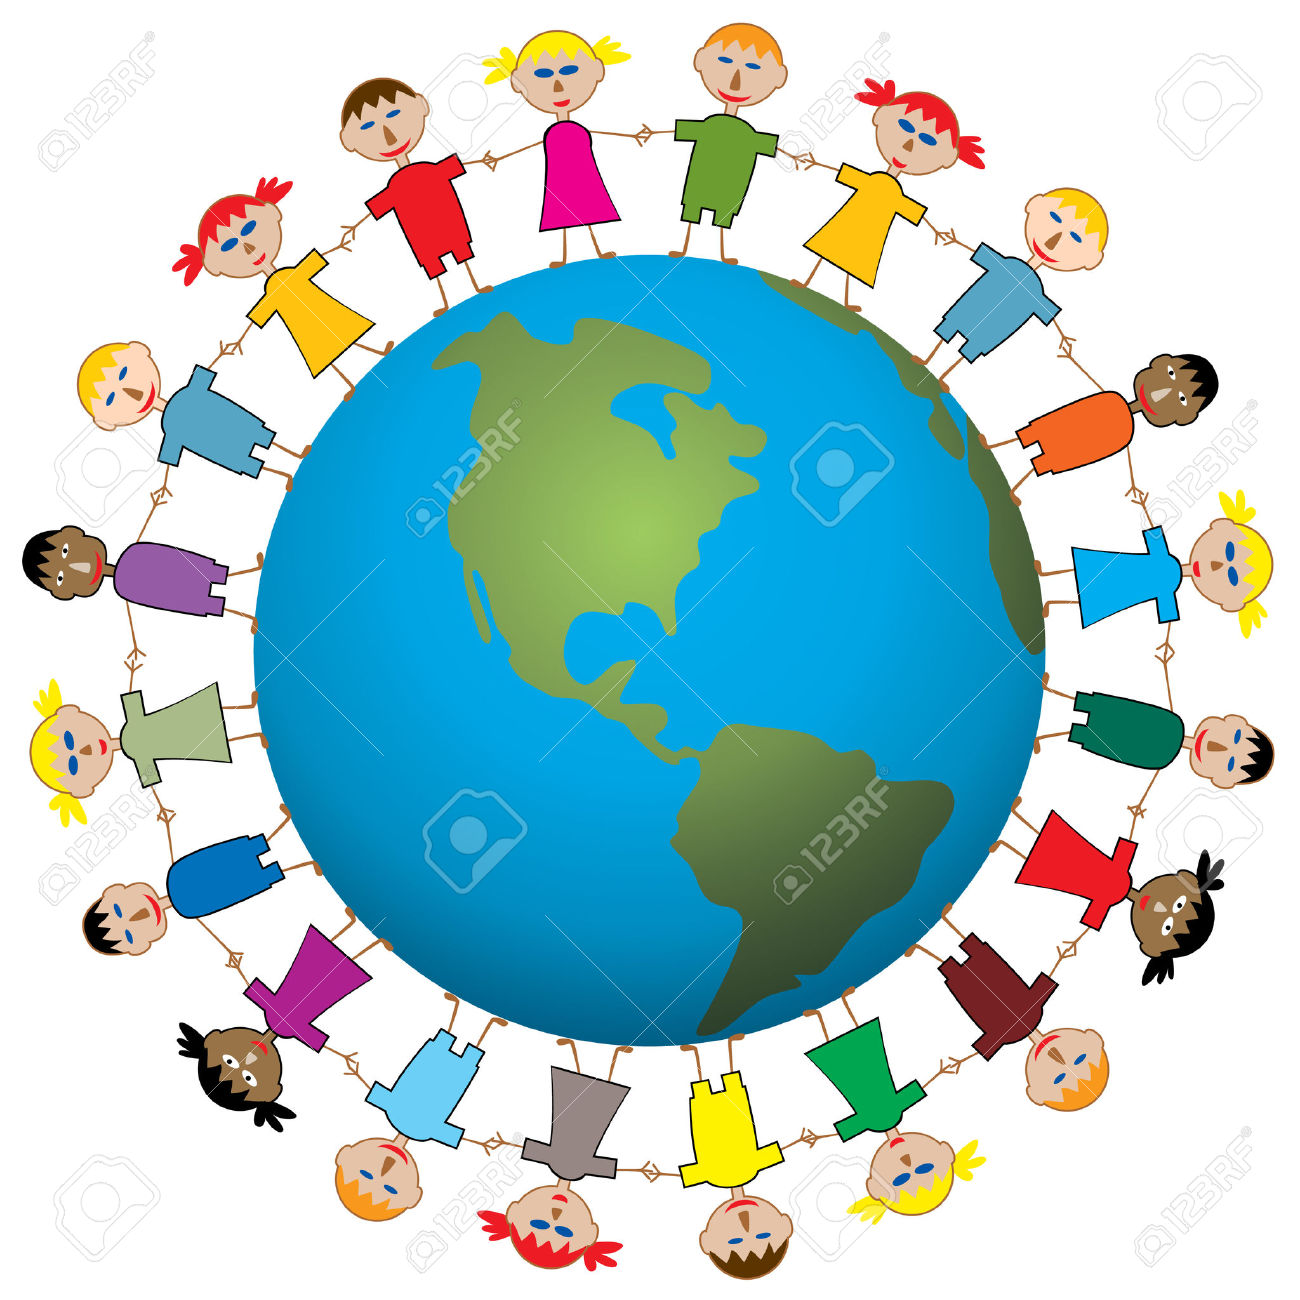 The world around us clipart clip art library The world around us clipart - ClipartNinja clip art library